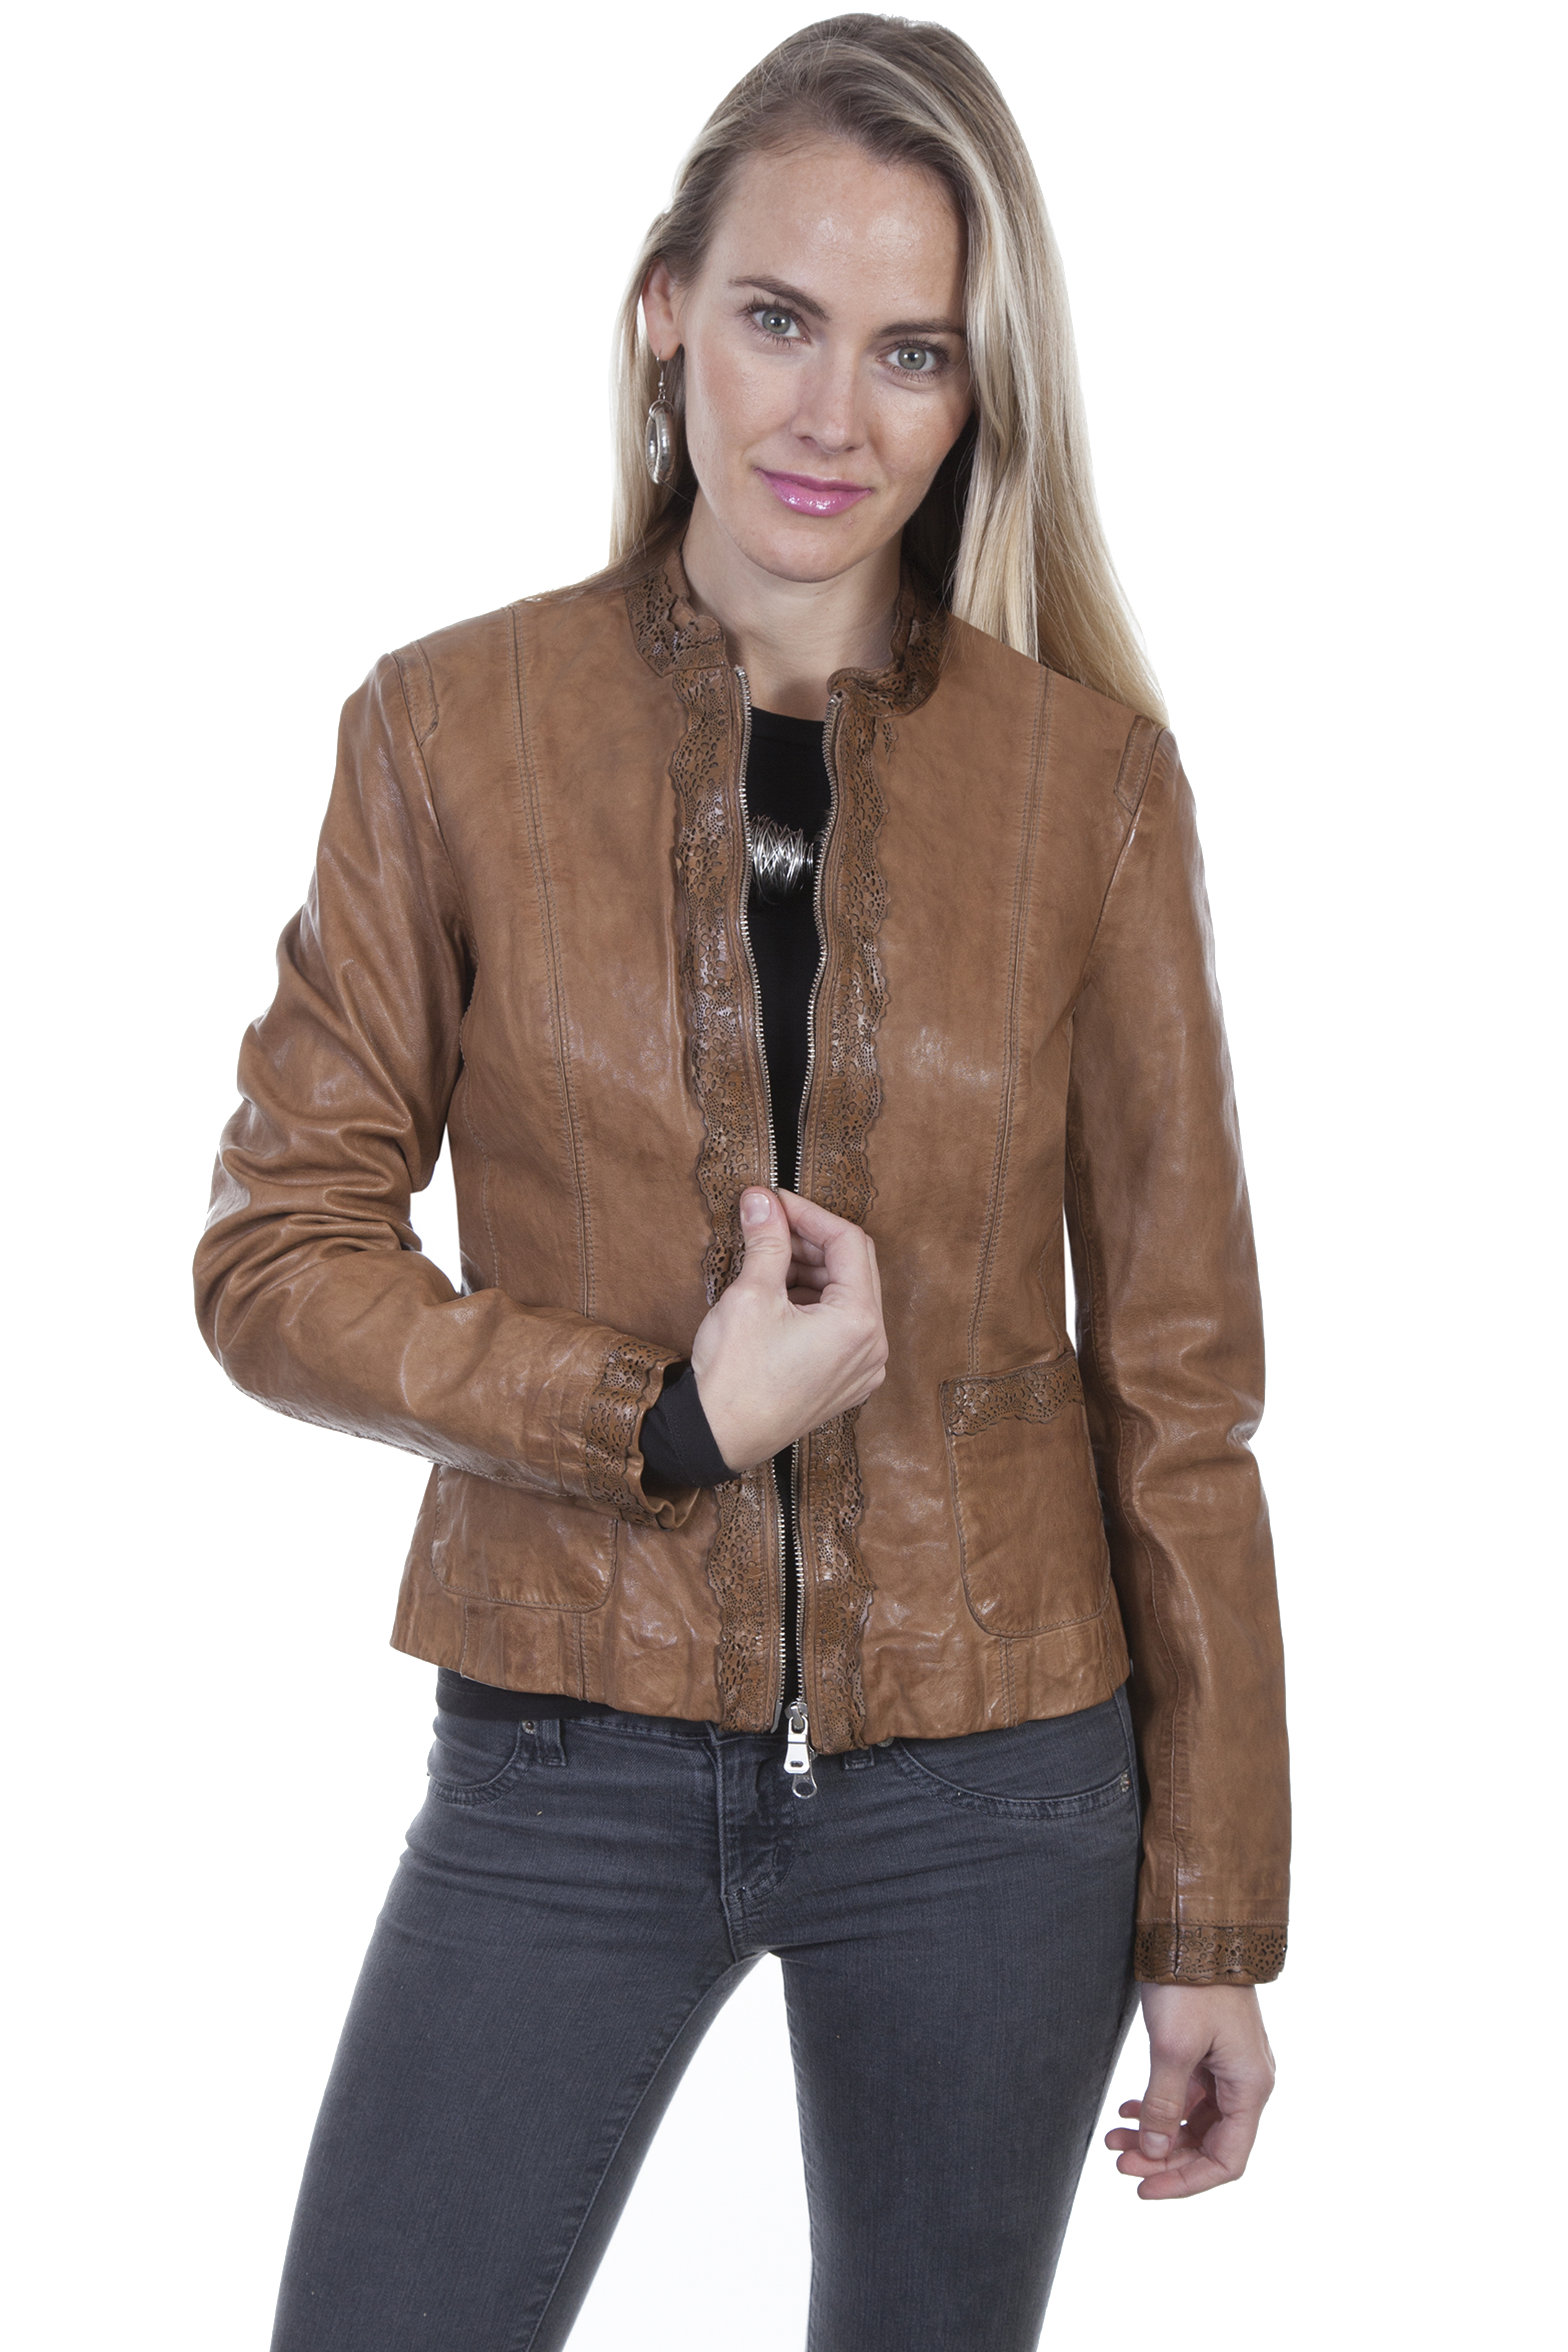 56b1dce0 Scully Leather; Western and Contemporary Clothing and Accessories